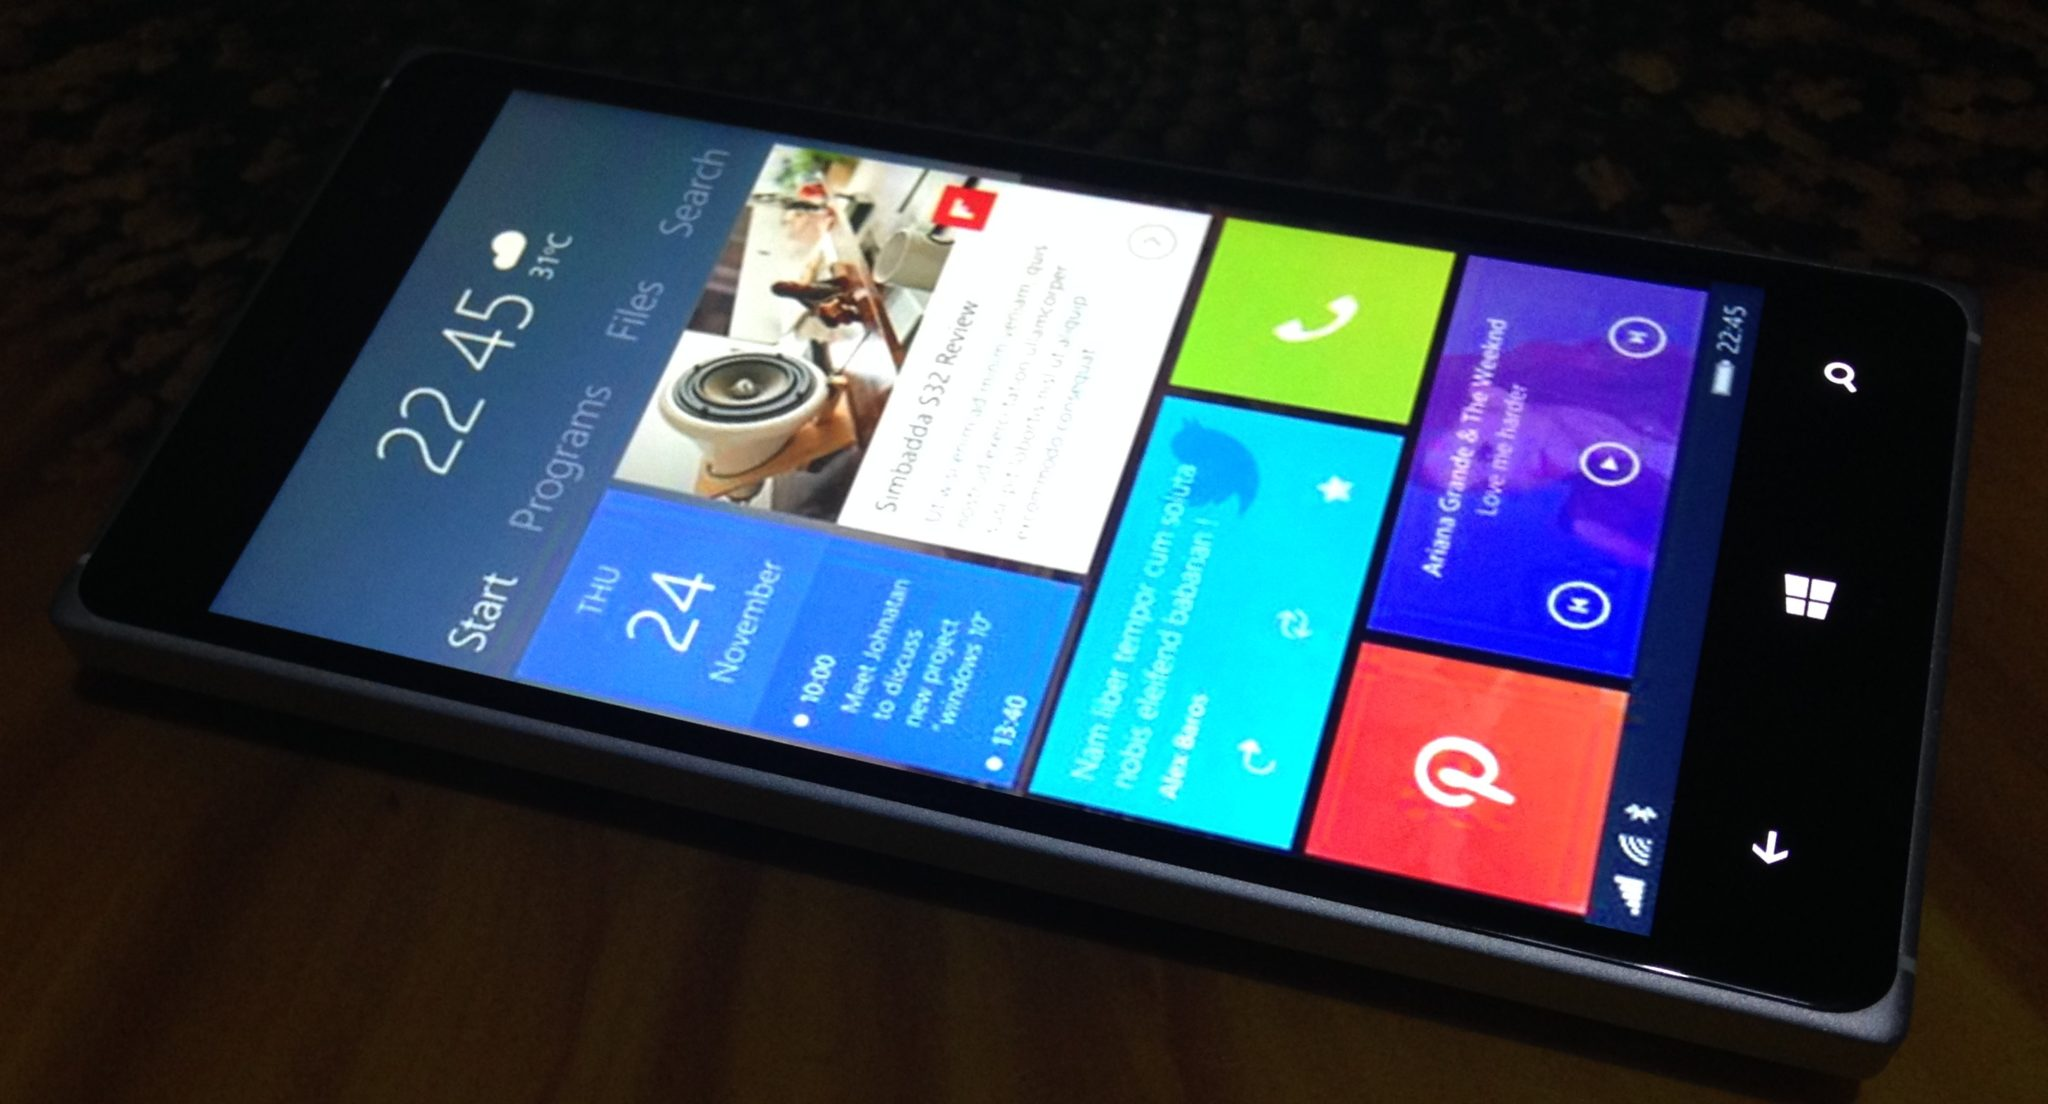 Microsoft is turning off push notifications for Windows Phone 7.5 and 8.0